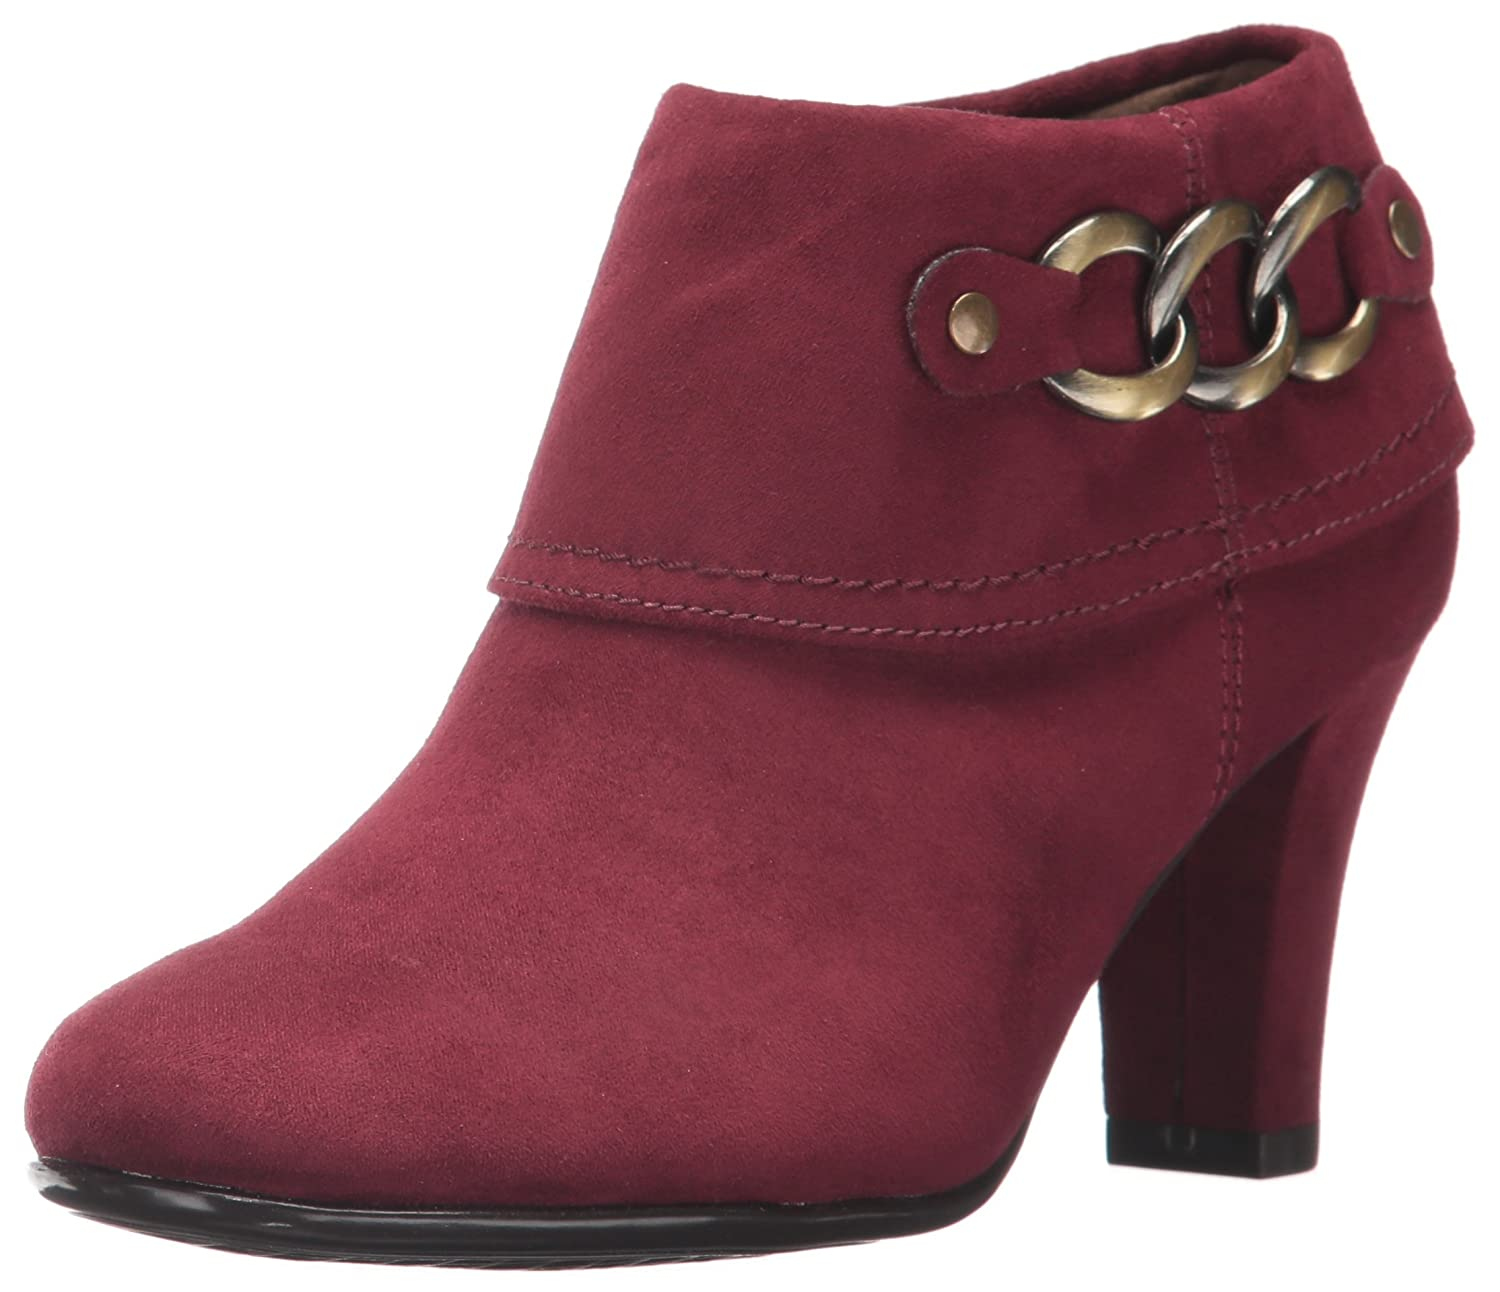 Aerosoles Women's First Role Ankle Boot B073DNPQP5 8.5 W US|Wine Fabric